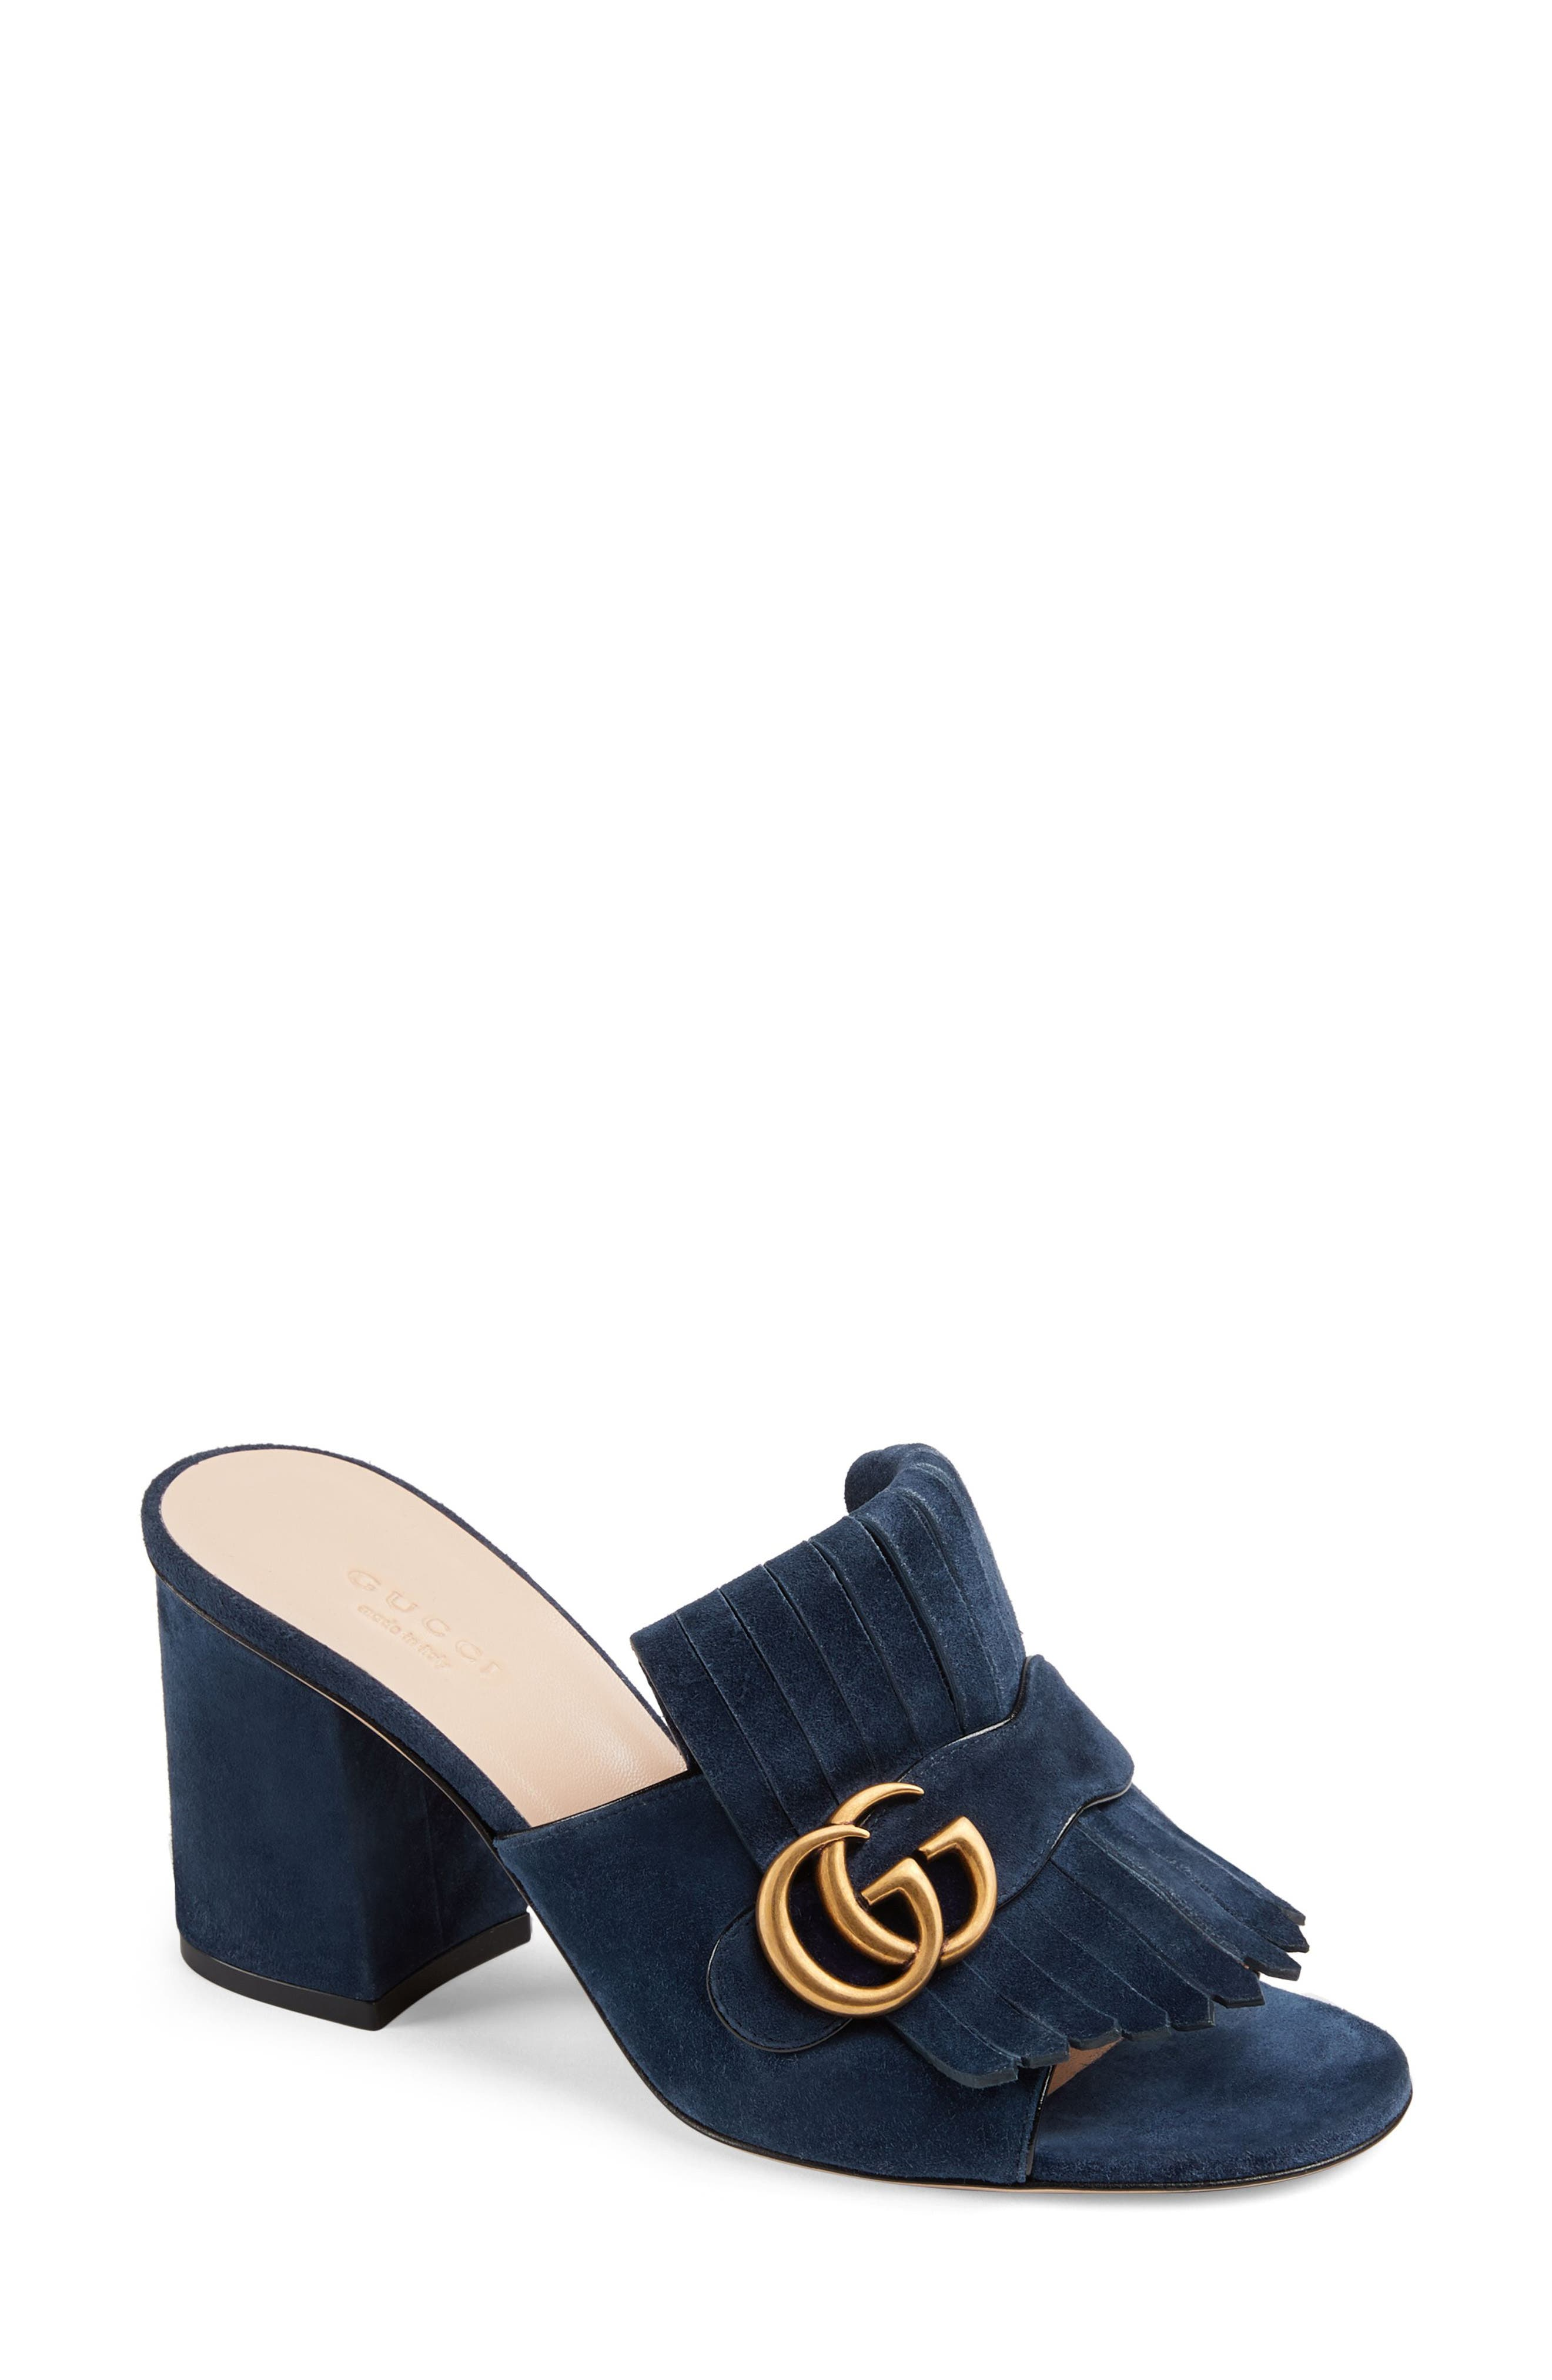 GUCCI, GG Marmont Peep Toe Mule, Main thumbnail 1, color, BLUE INK SUEDE